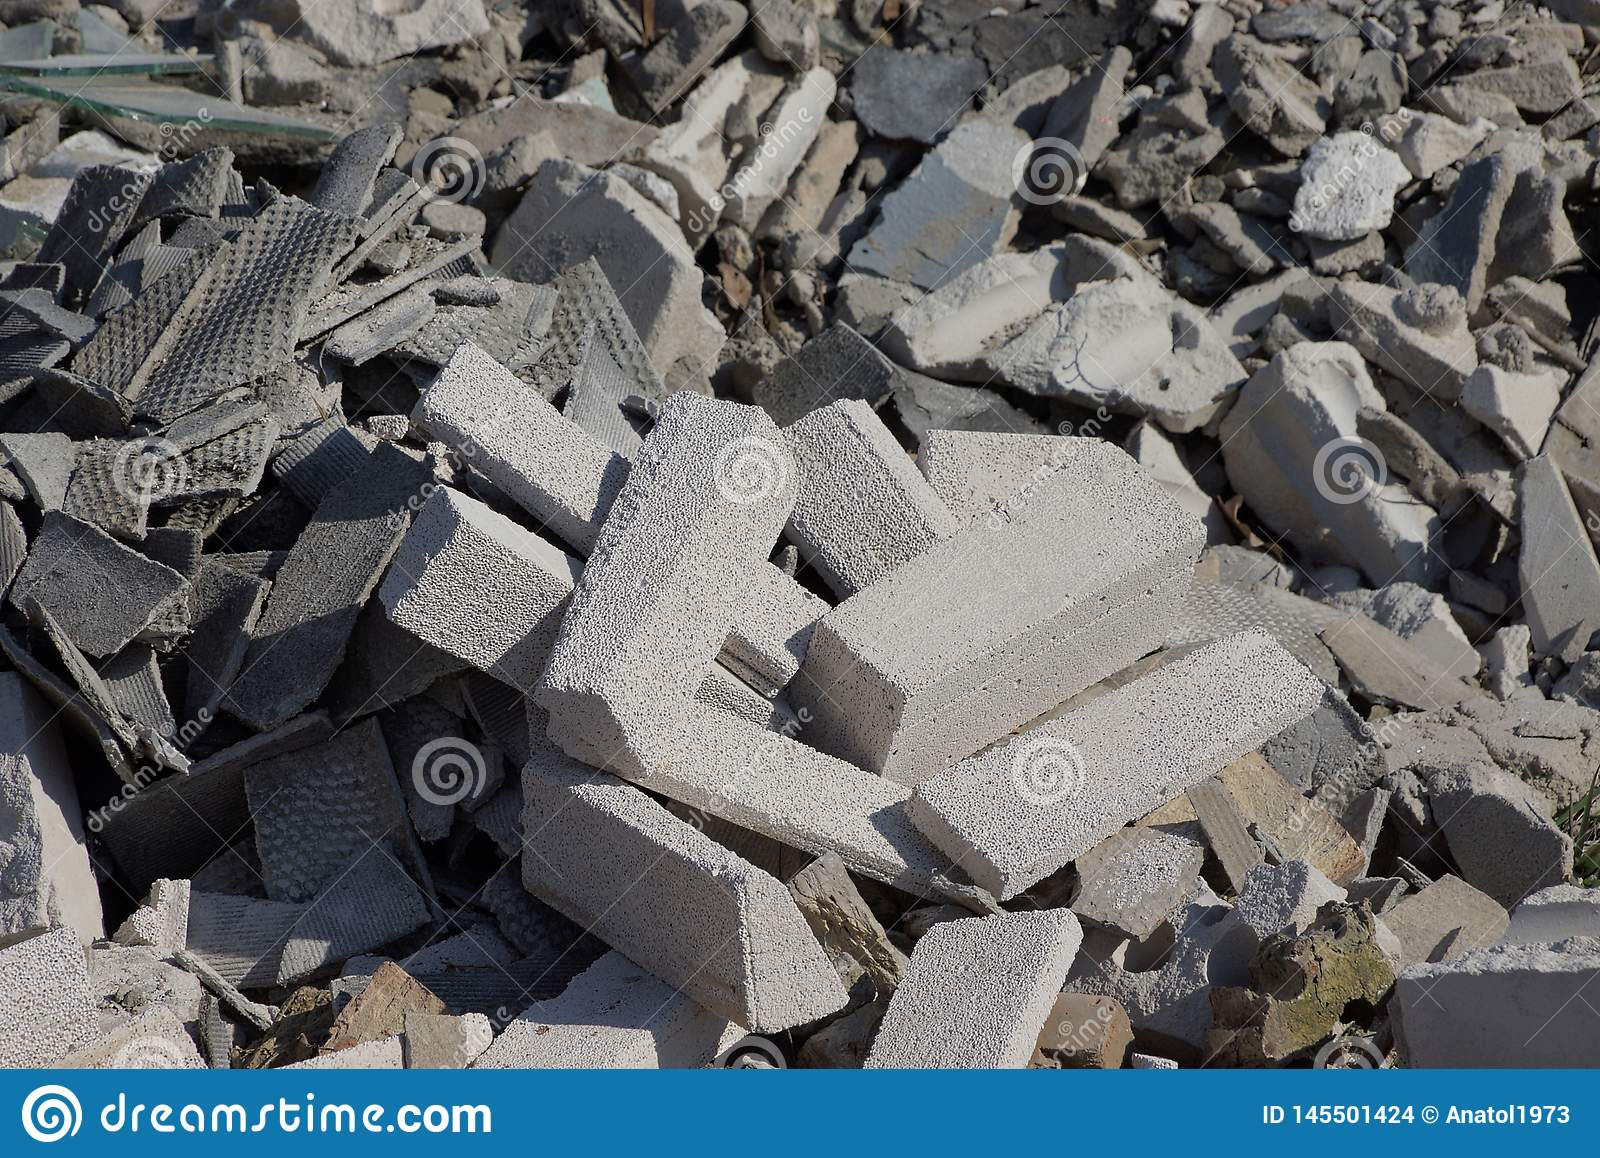 Gray stone background of pieces of bricks and concrete in a pile of garbage on the street